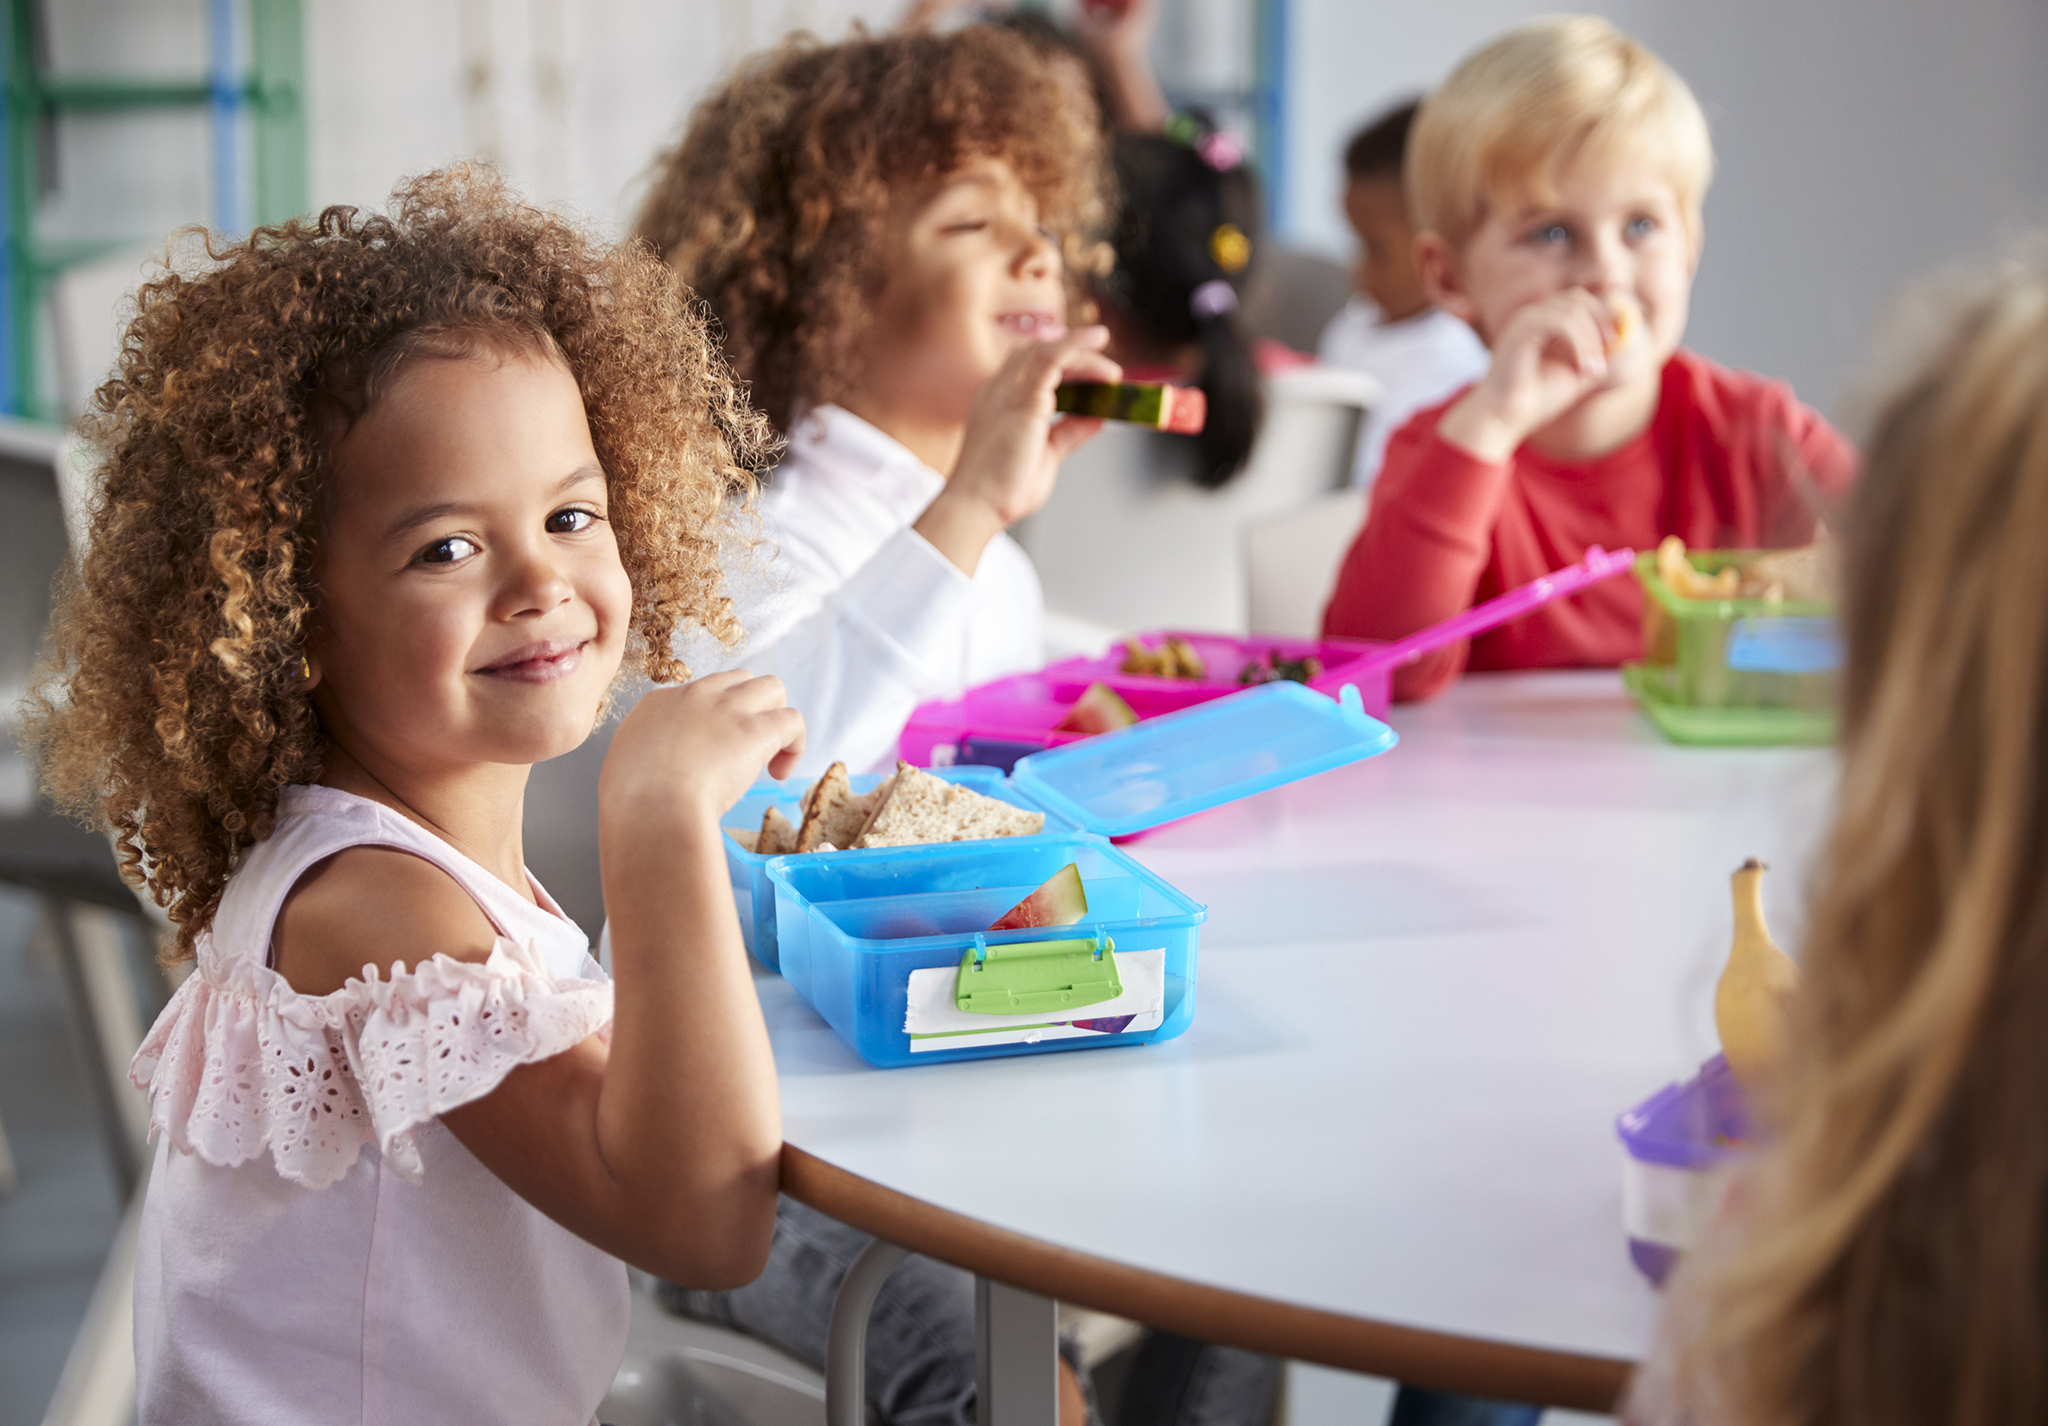 Close up of smiling young children sitting at a table eating their packed lunches together at infant school, girl smiling to camera, selective focus